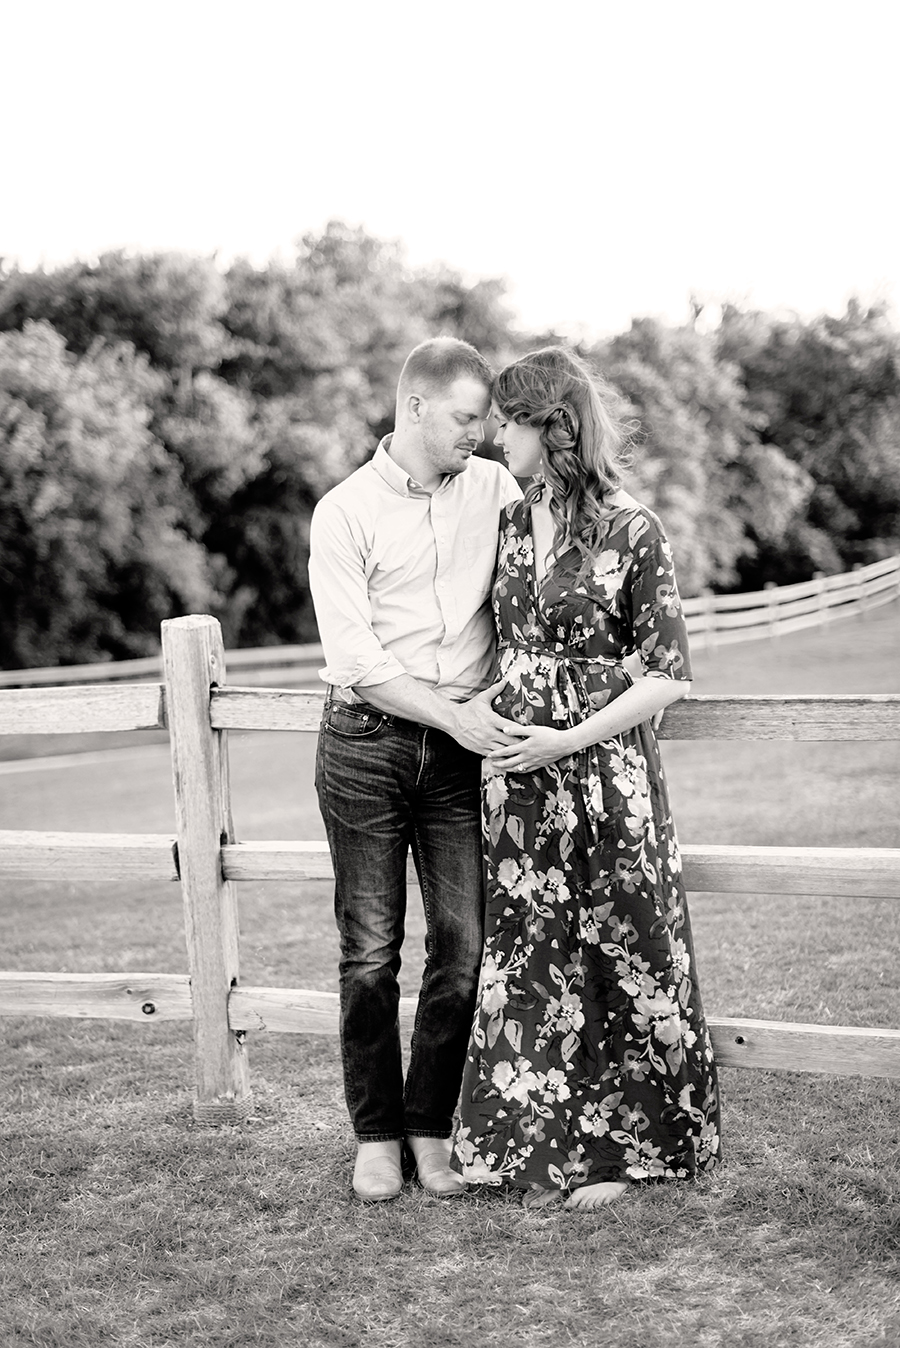 maternity-pregnancy-reveal-photo-session-photography-dallas-plano-north-texas-richardson-allen-mckinney-frisco-addison-web-B-7.jpg